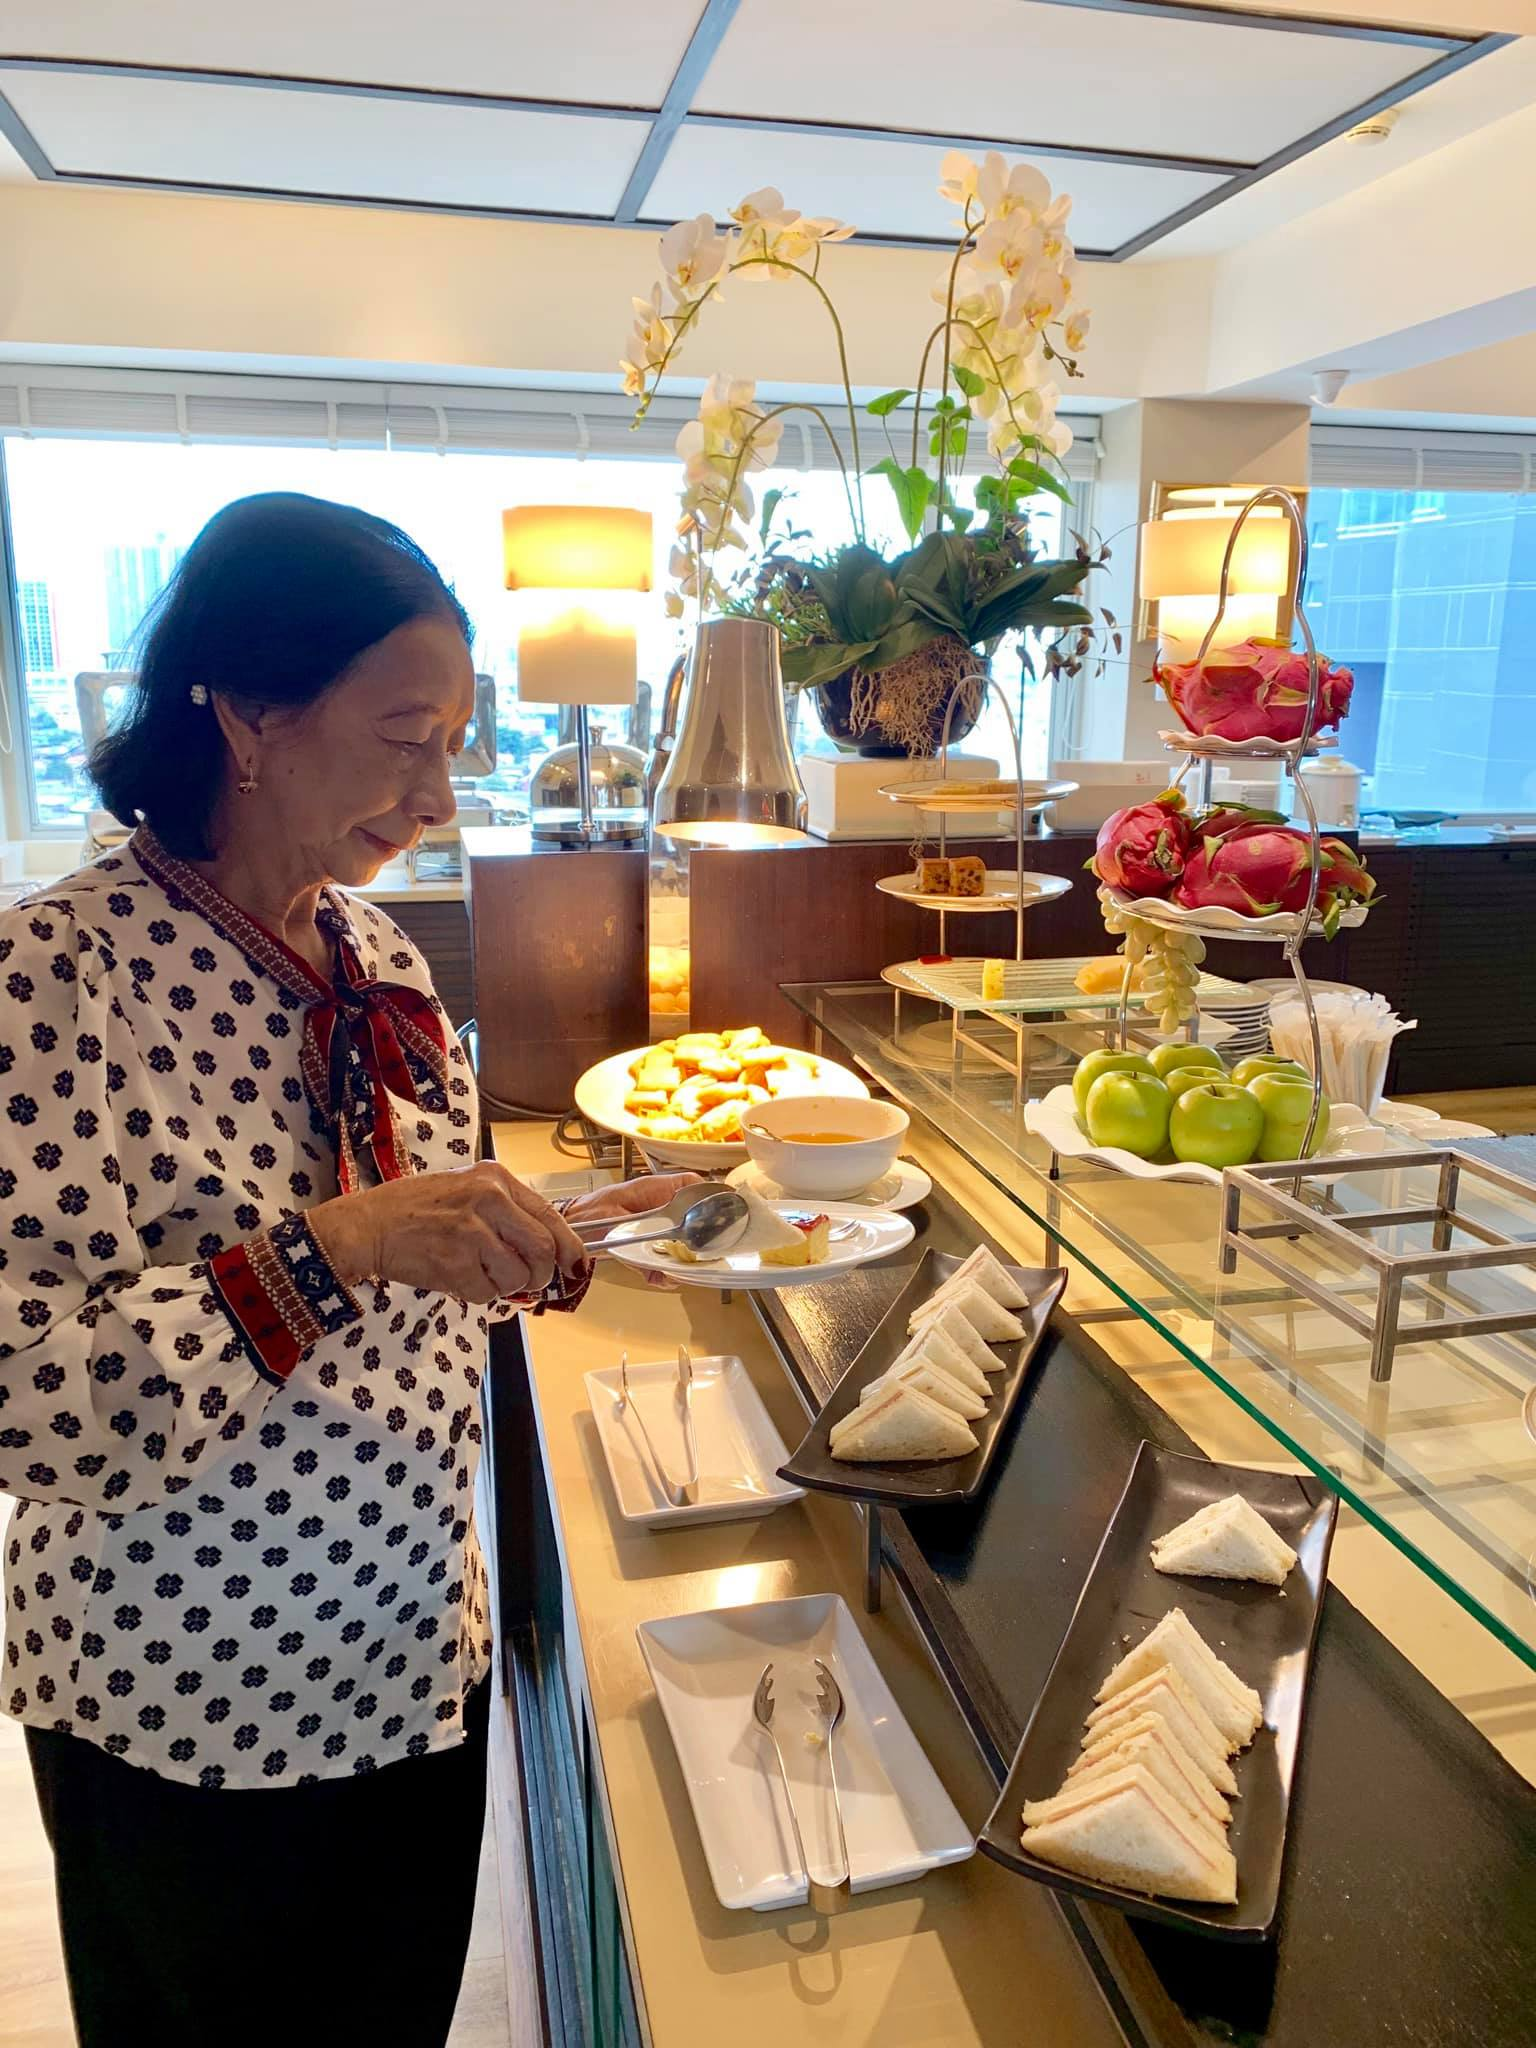 Our Luxurious Staycation At Ramada Plaza In Bangkok And Our Tour With Tinggly Experiences9